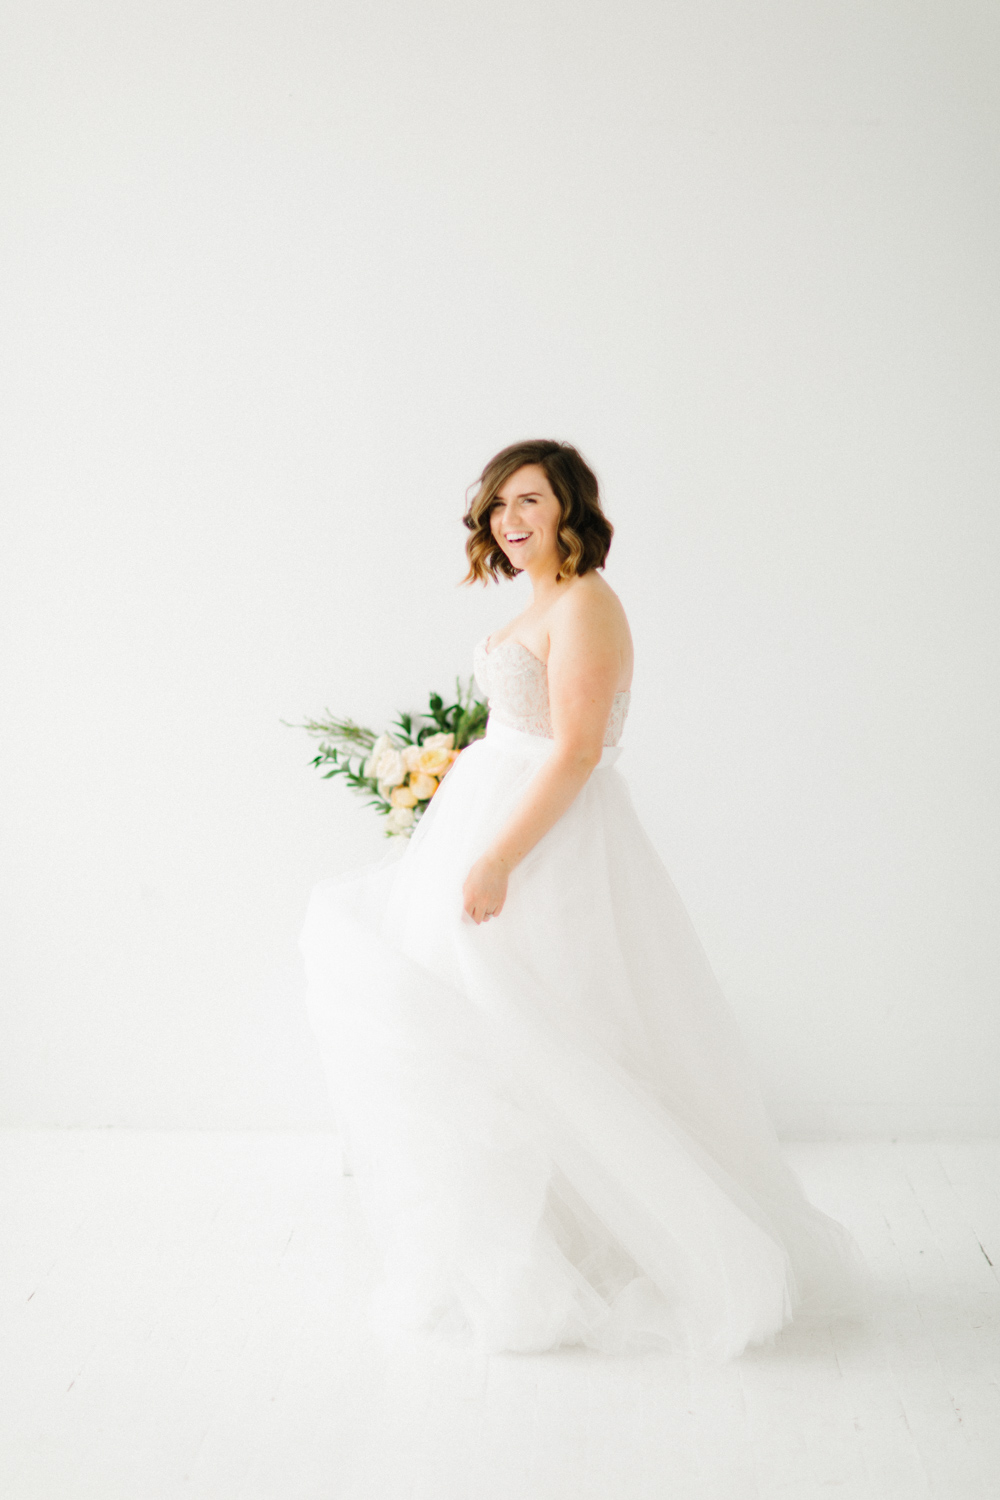 Seattle Fine Art Wedding Photographer | Seattle Downtown White Studio Bridal Session | Stunning Wedding Bouquet | Seattle Bride | Seattle Wedding | Photography Studio Space | Emma Rose Company Wedding Photography-6.jpg